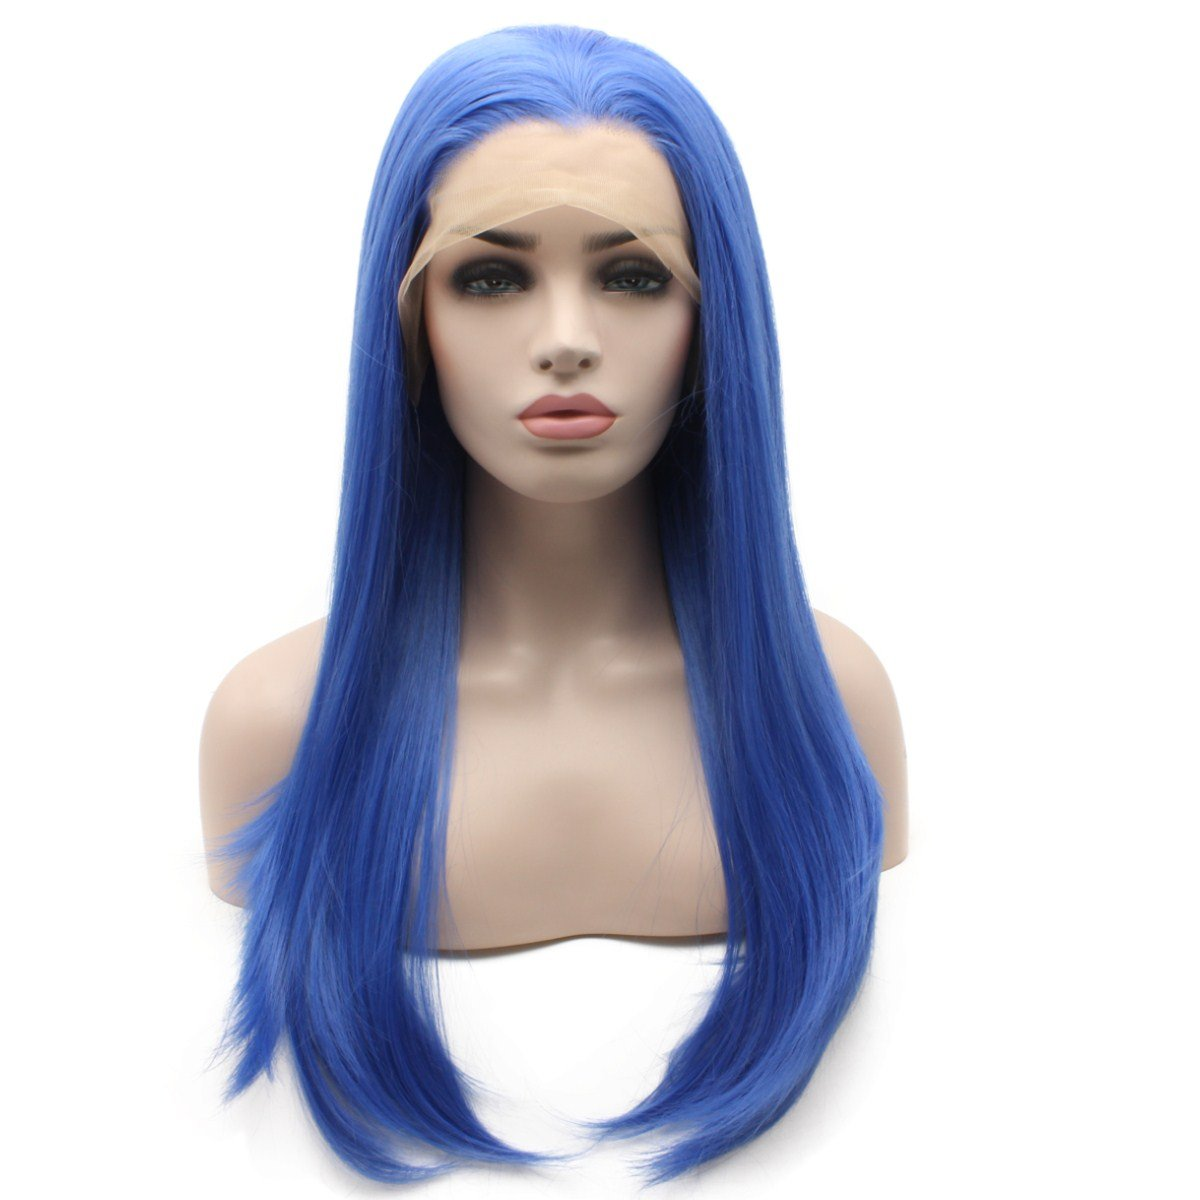 Iewig Blue Long Synthetic Lace Front Straight Wig Heat Resistant